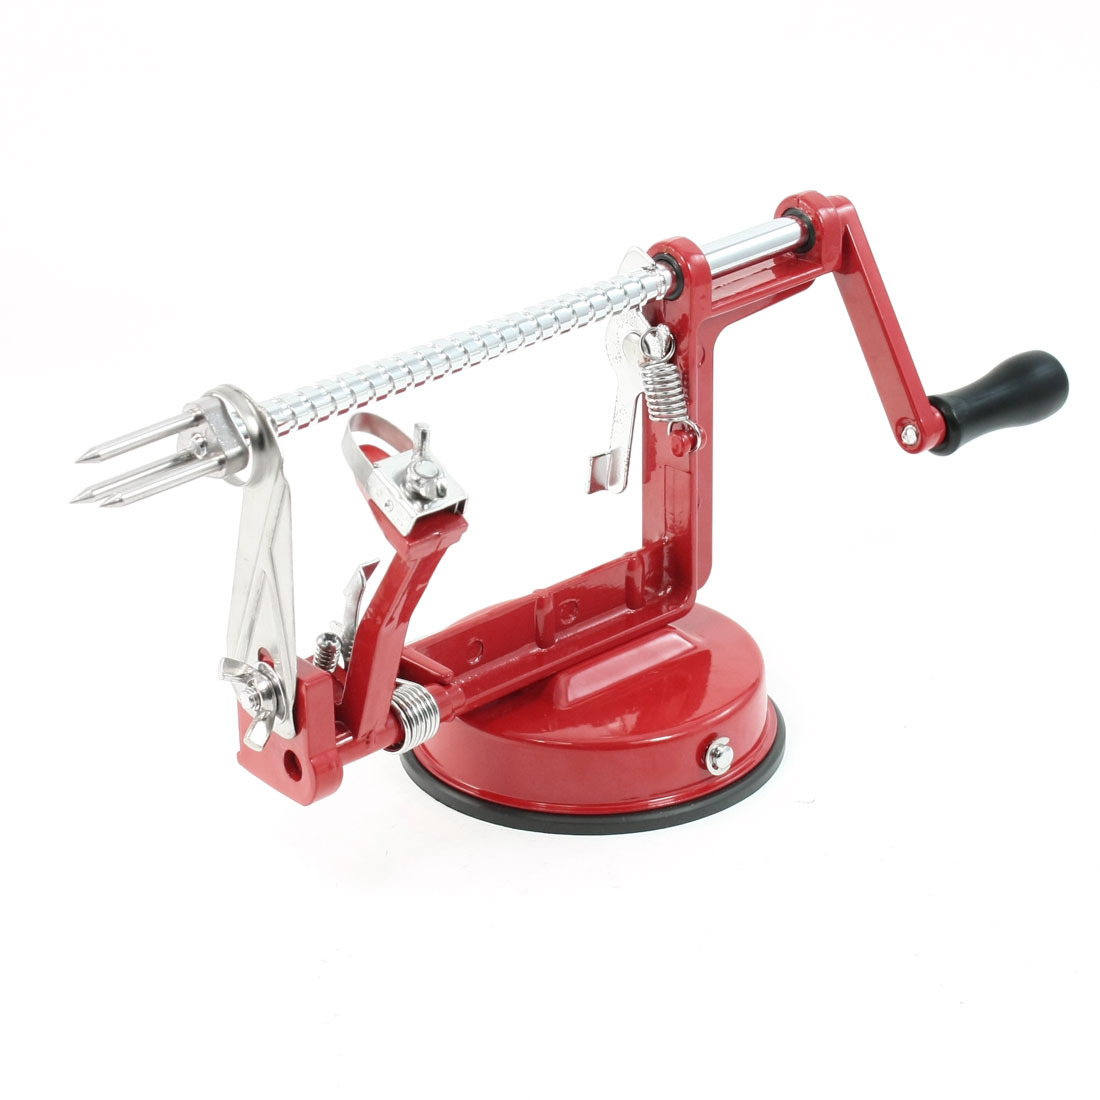 Stainless Steel Red Apple Pear Fruit Potato Peeler Corer Slicer Kitchen Tool